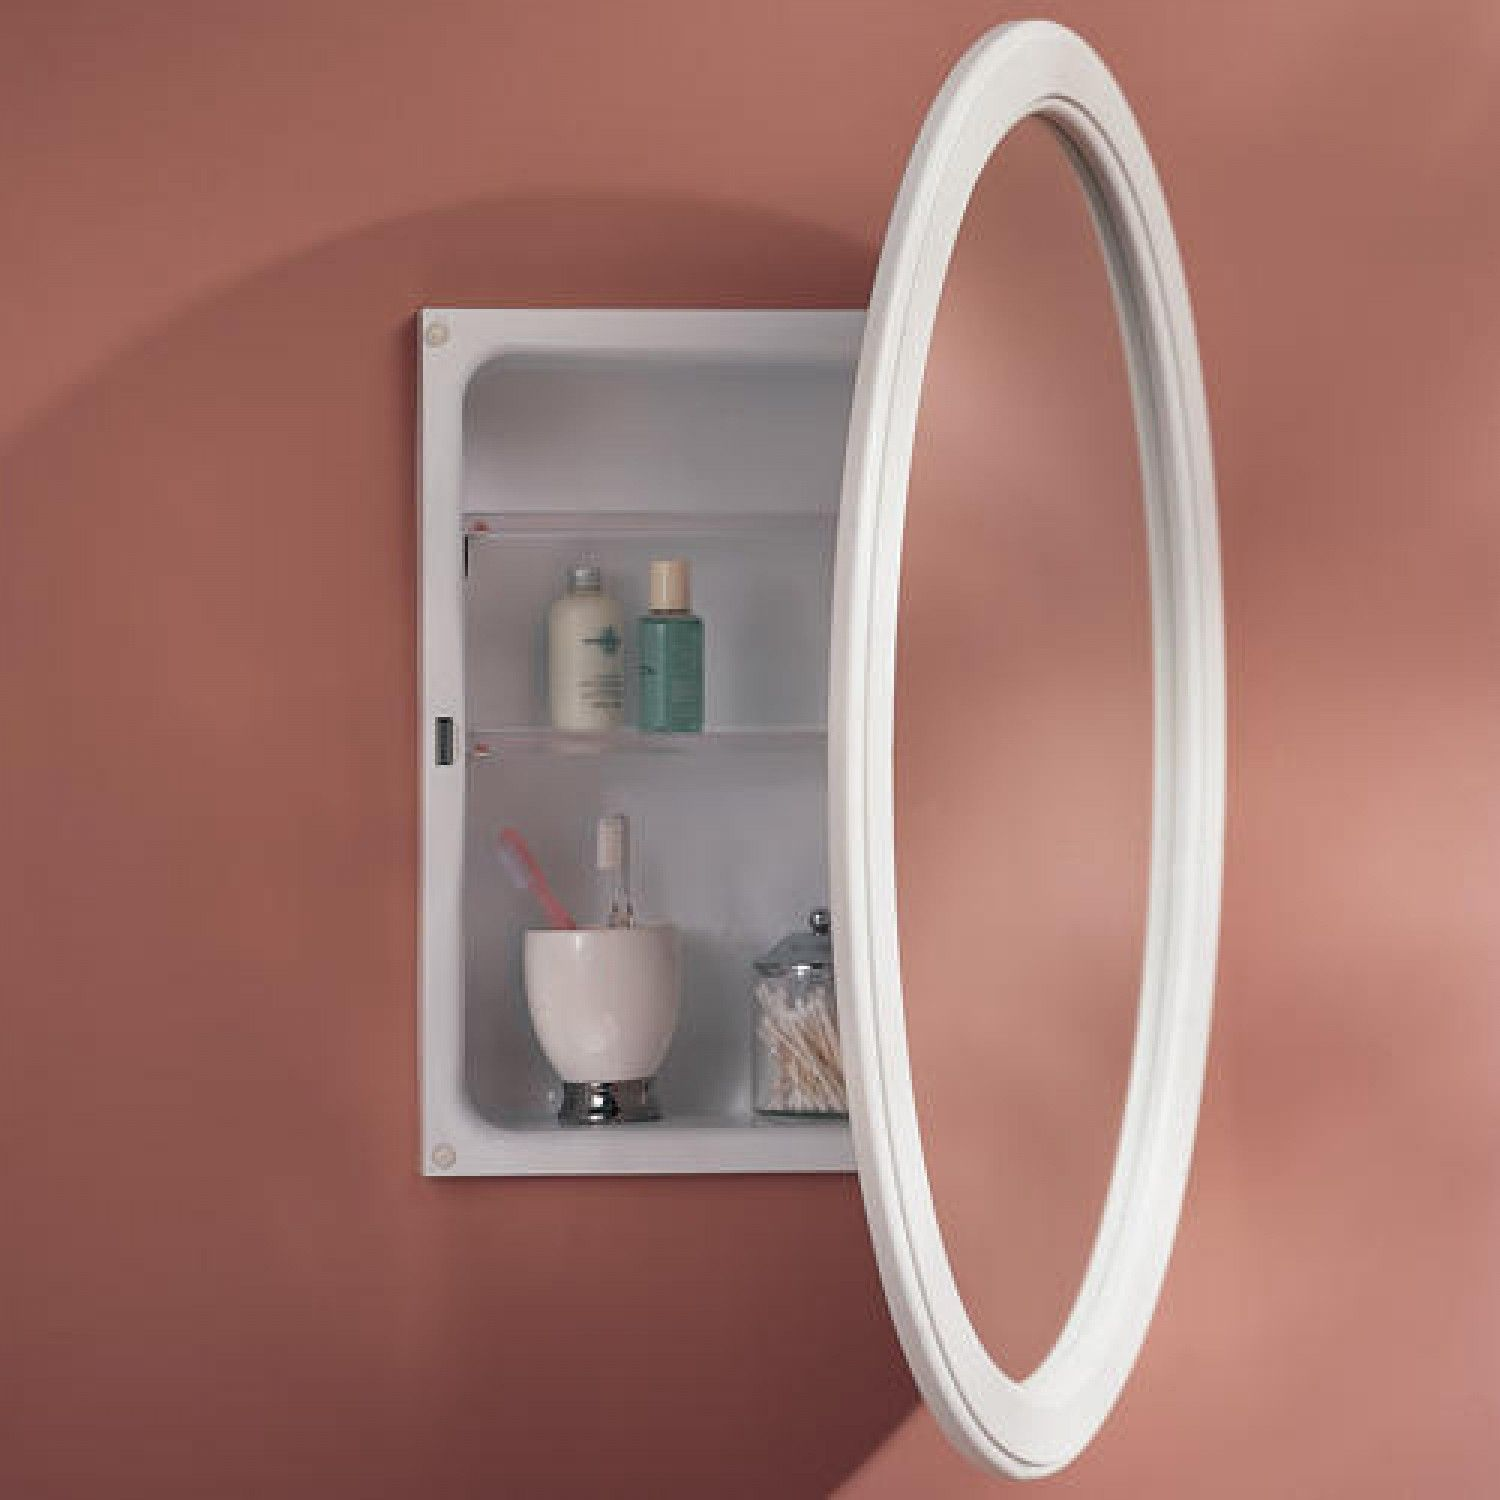 Dunhill Oval Recessed Medicine Cabinet Classic White Bathroom